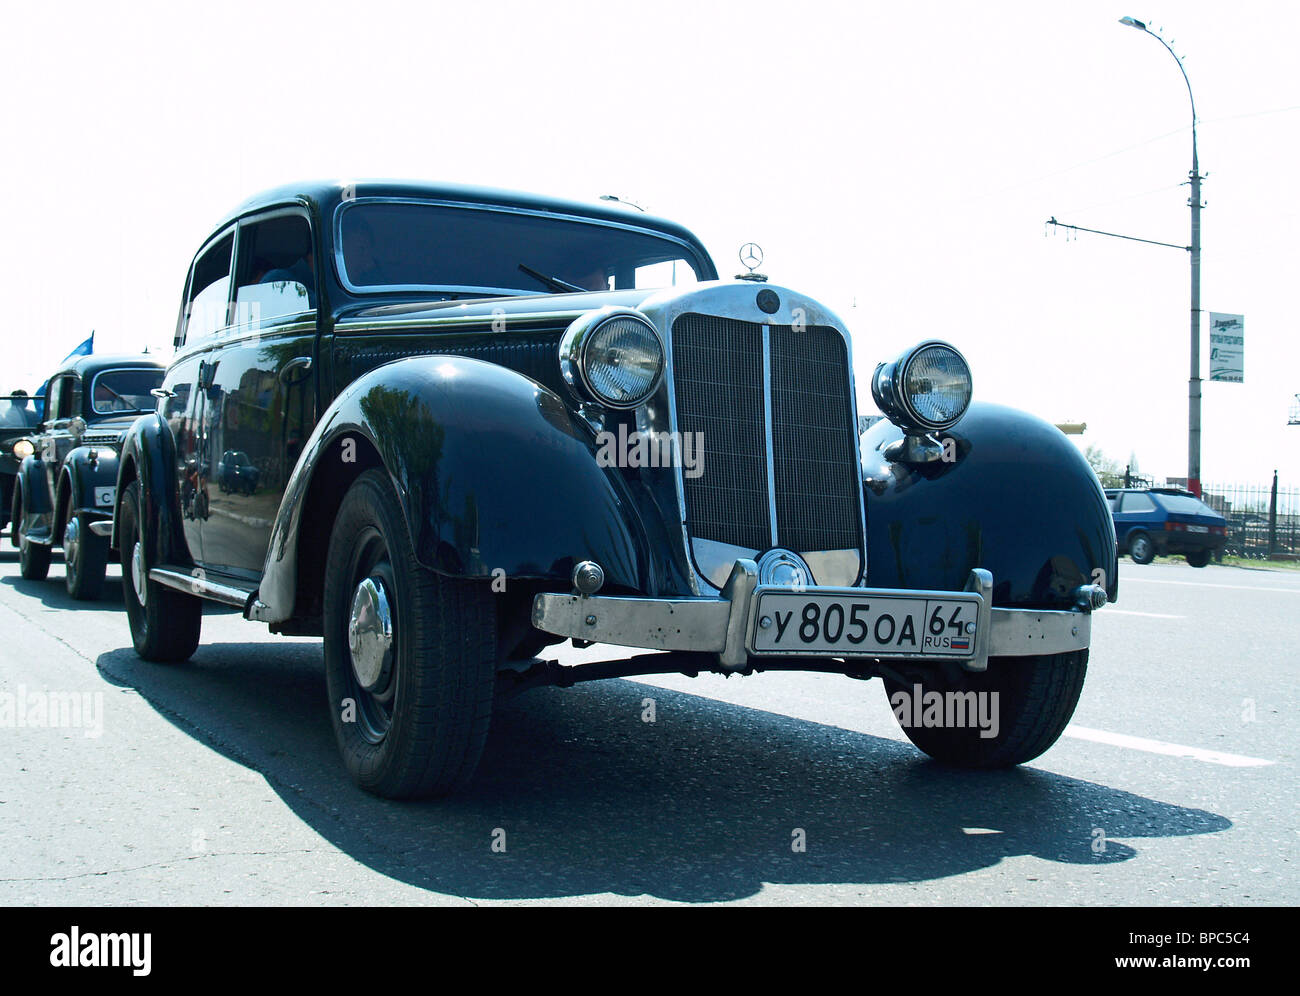 Vintage Automobiles Parade in Saratov Stock Photo, Royalty Free ...